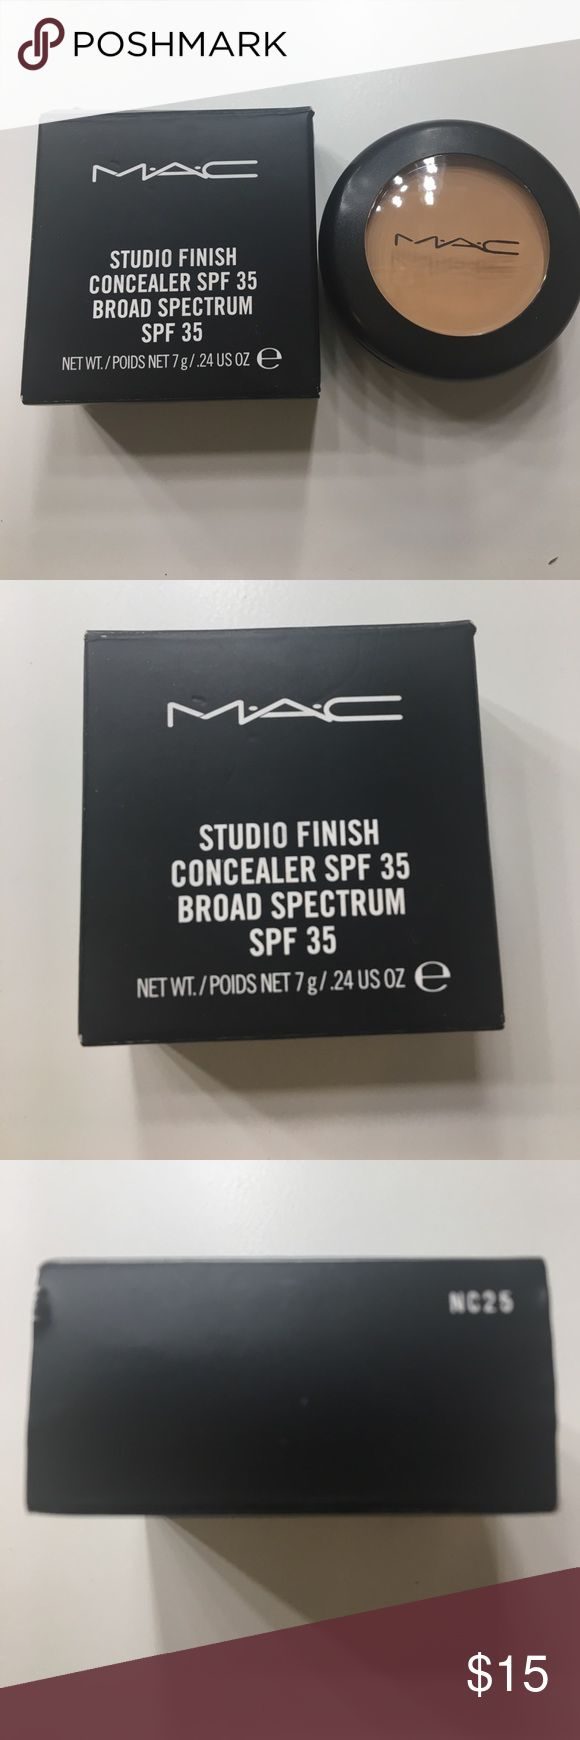 MAC Studio Finish Concealer NC25 - brand-new. MAC Studio Finish Concealer NC25 - brand-new, never used! I have shade NC10 as well. MAC Cosmetics Makeup Concealer